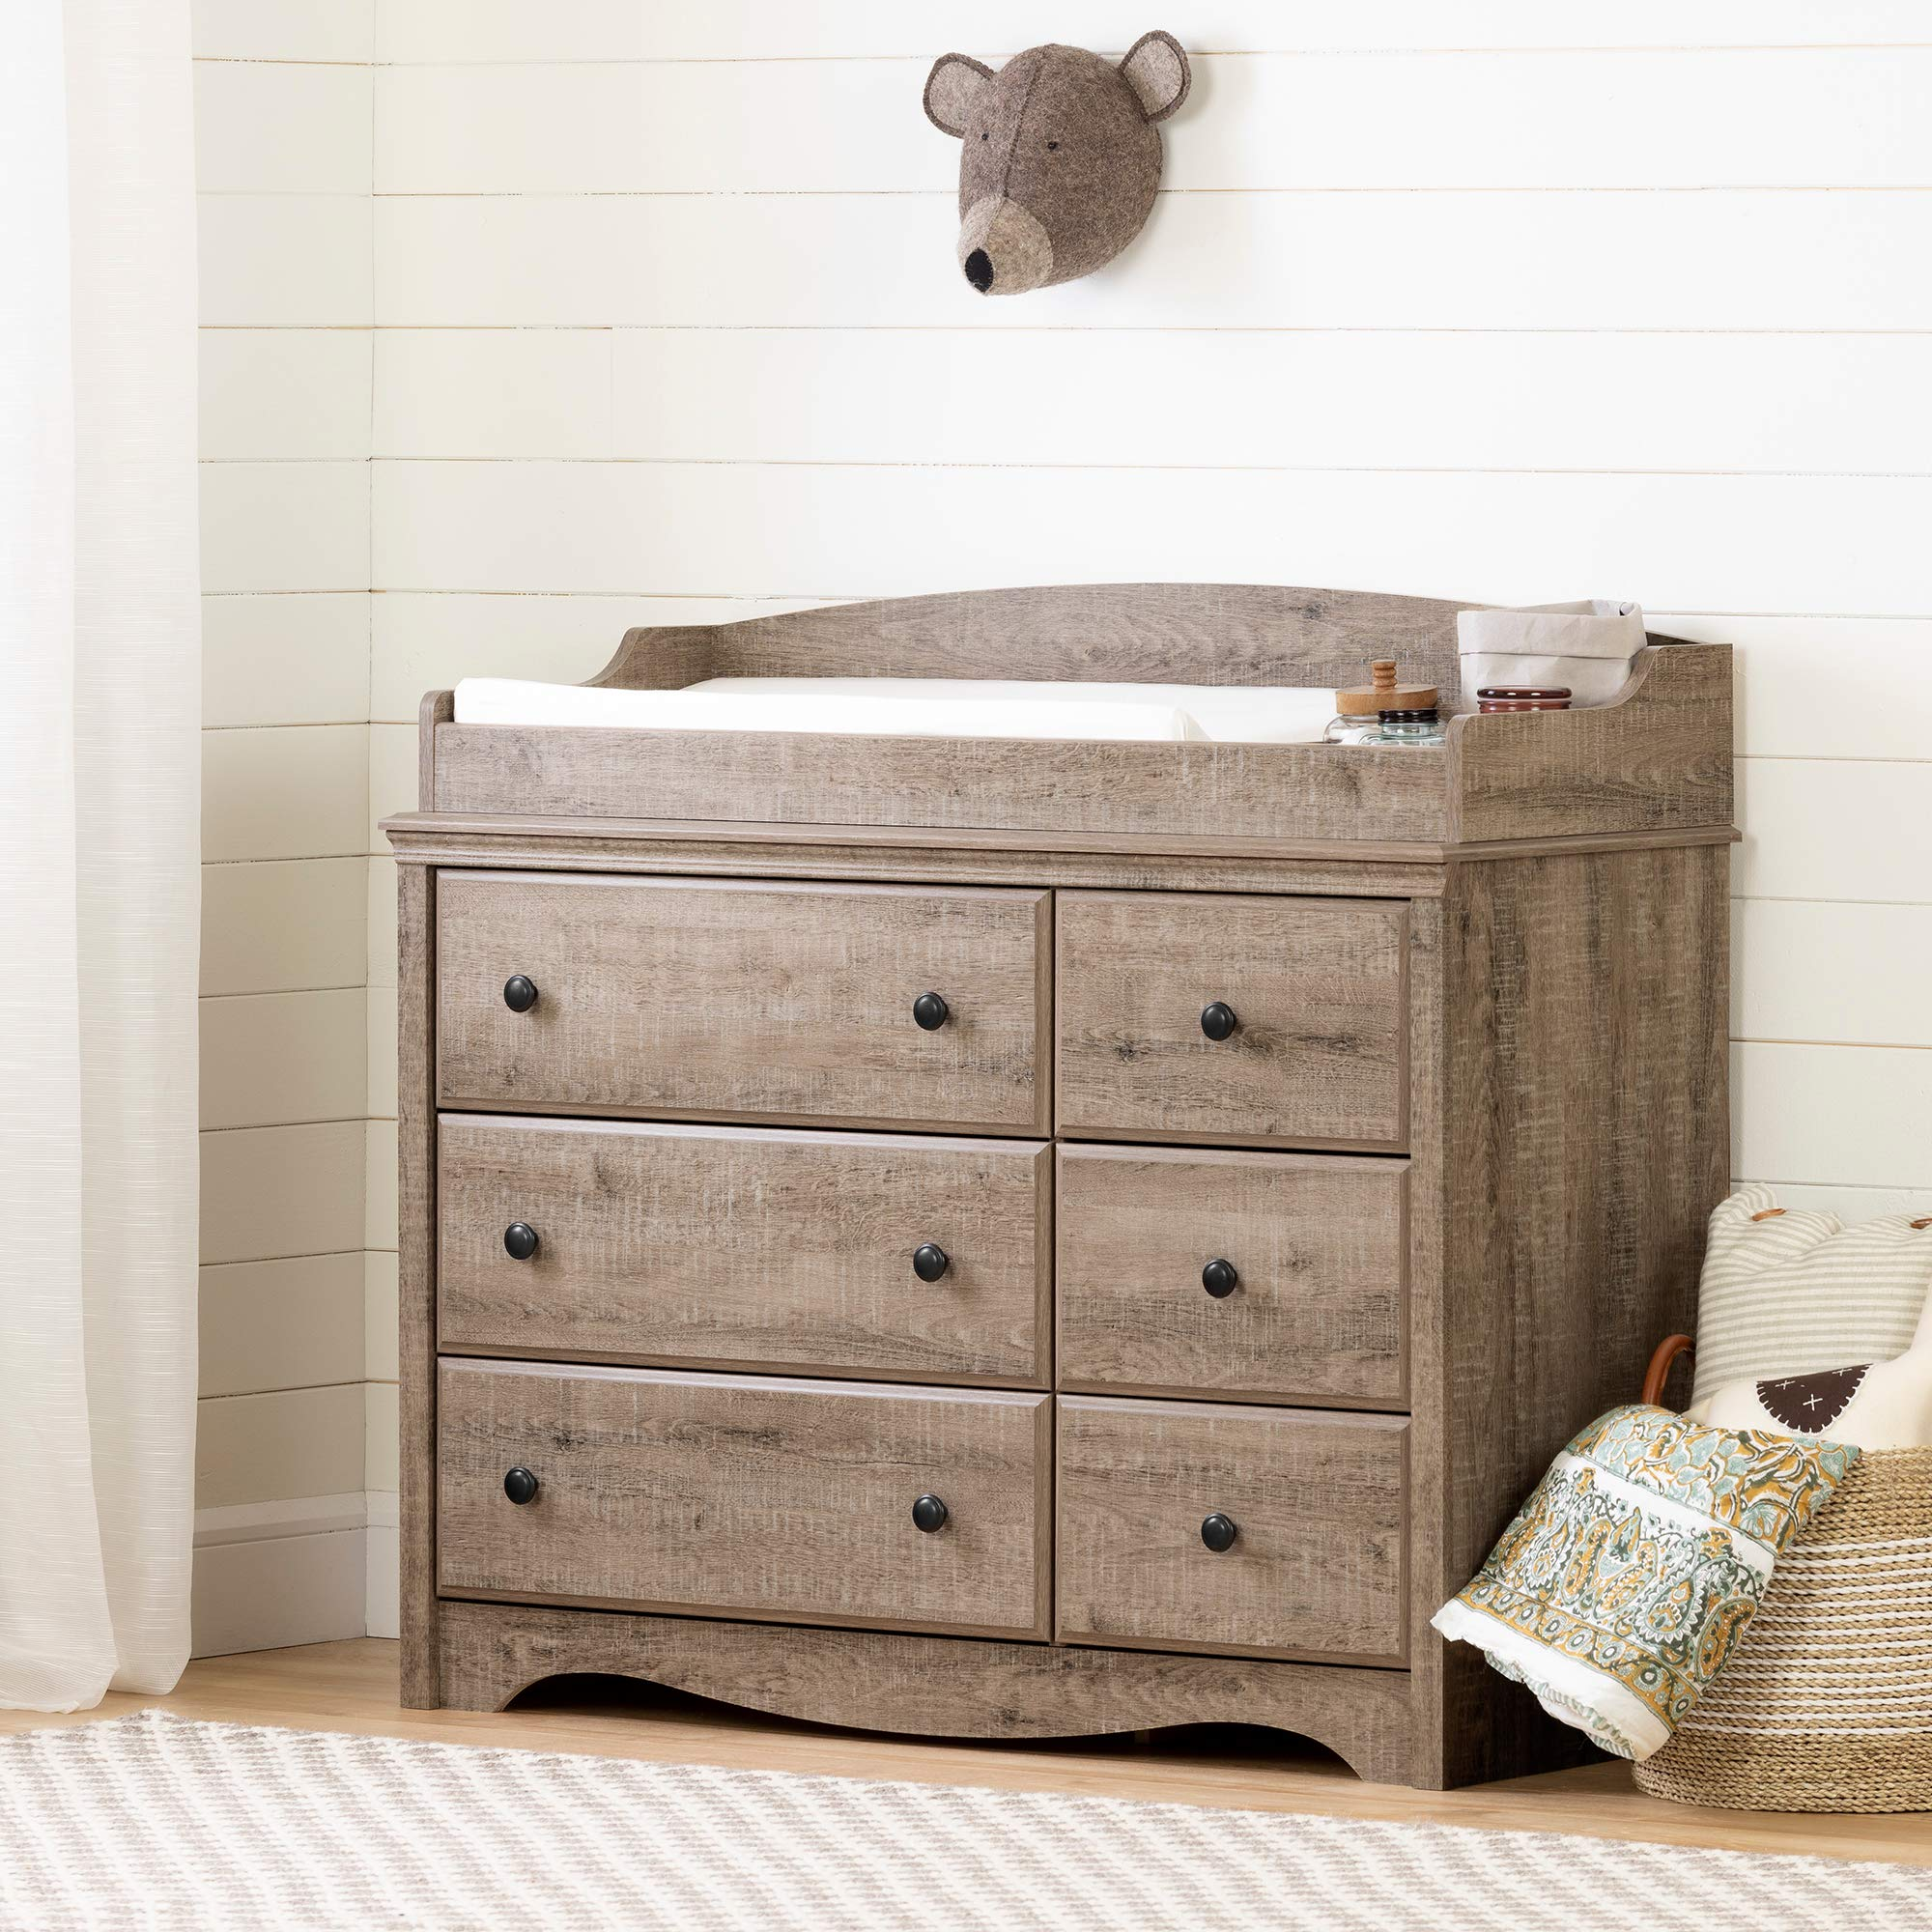 South Shore 12547 Angel Changing Table 6-Drawers-Weathered Oak by South Shore